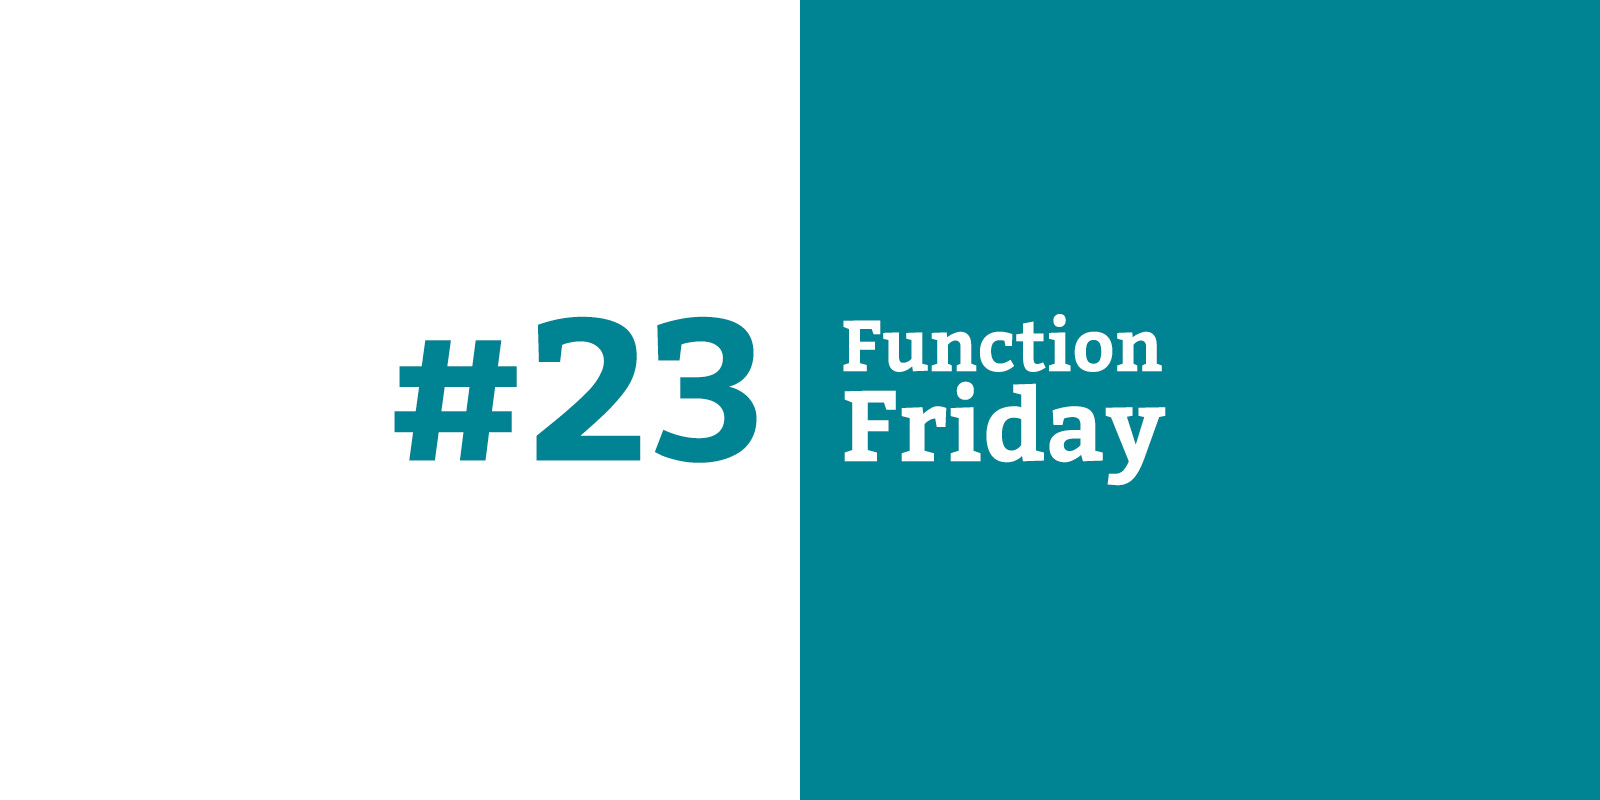 Function Friday #23